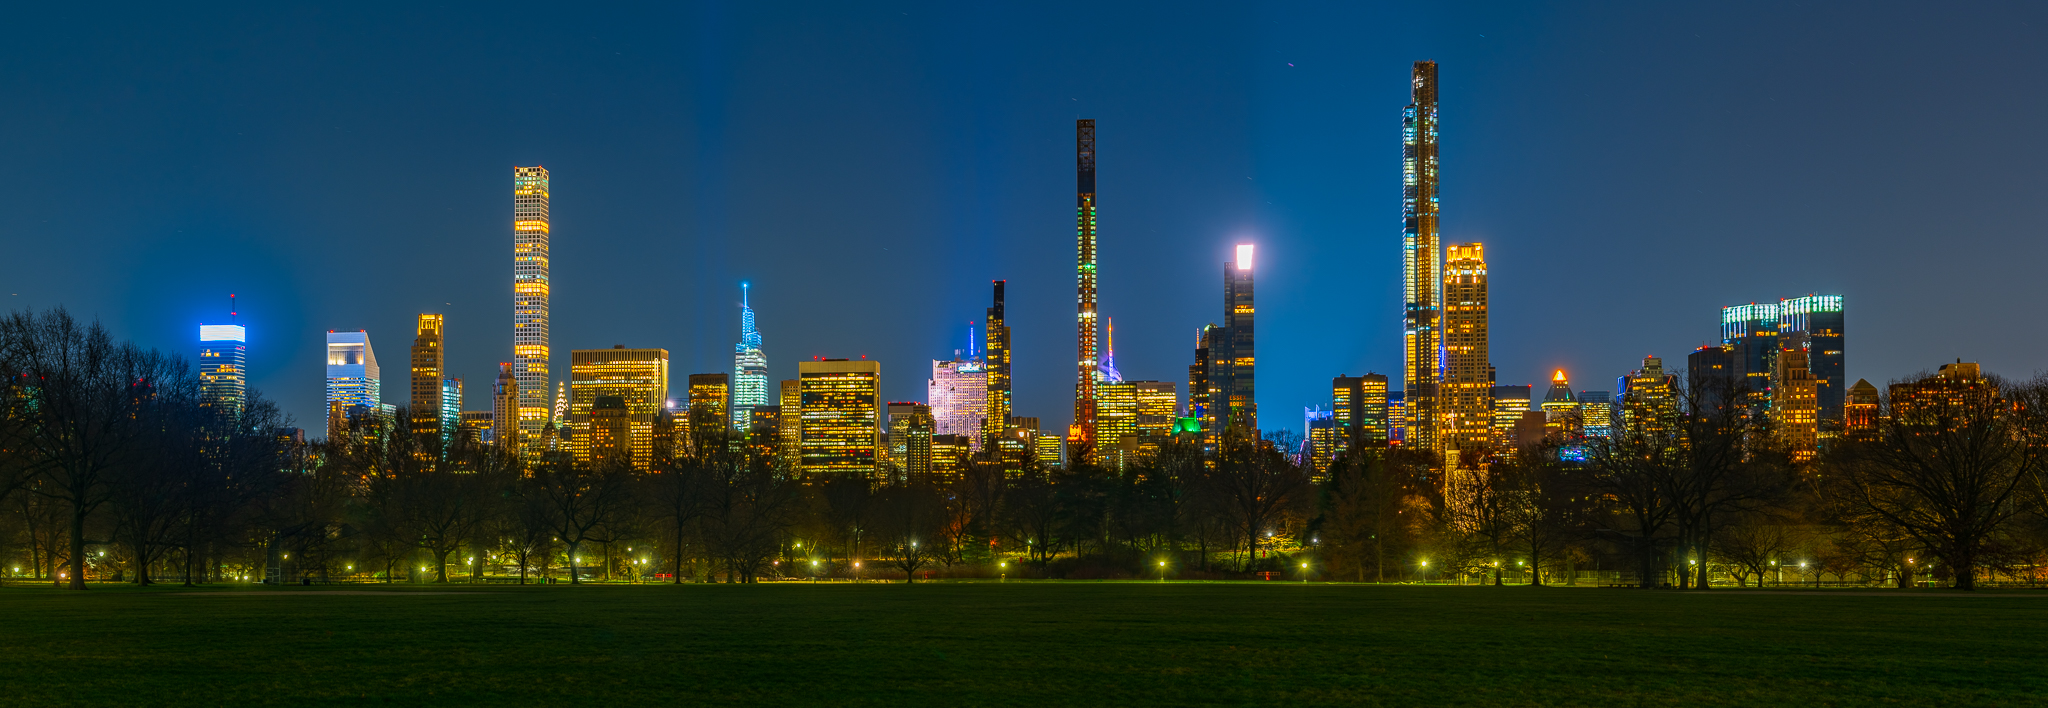 a panoramic night photo of central park south new york city